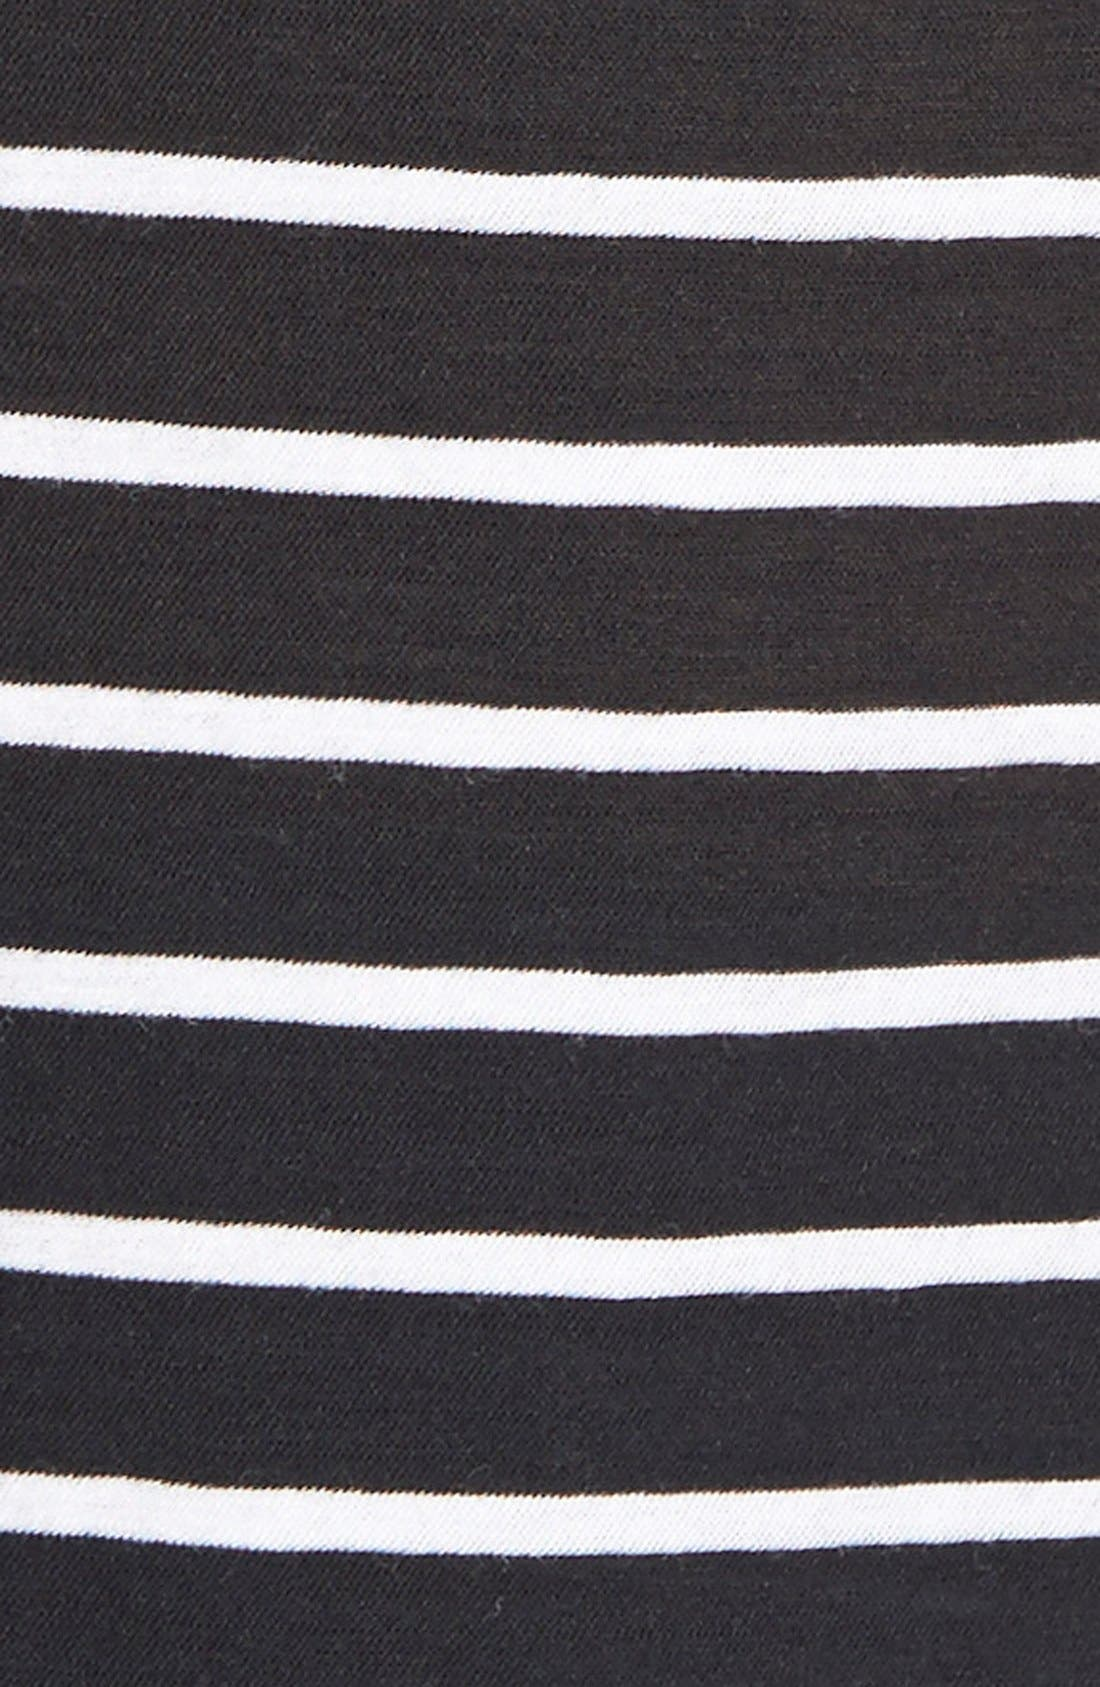 Alternate Image 3  - James Perse Classic Stripe Tee